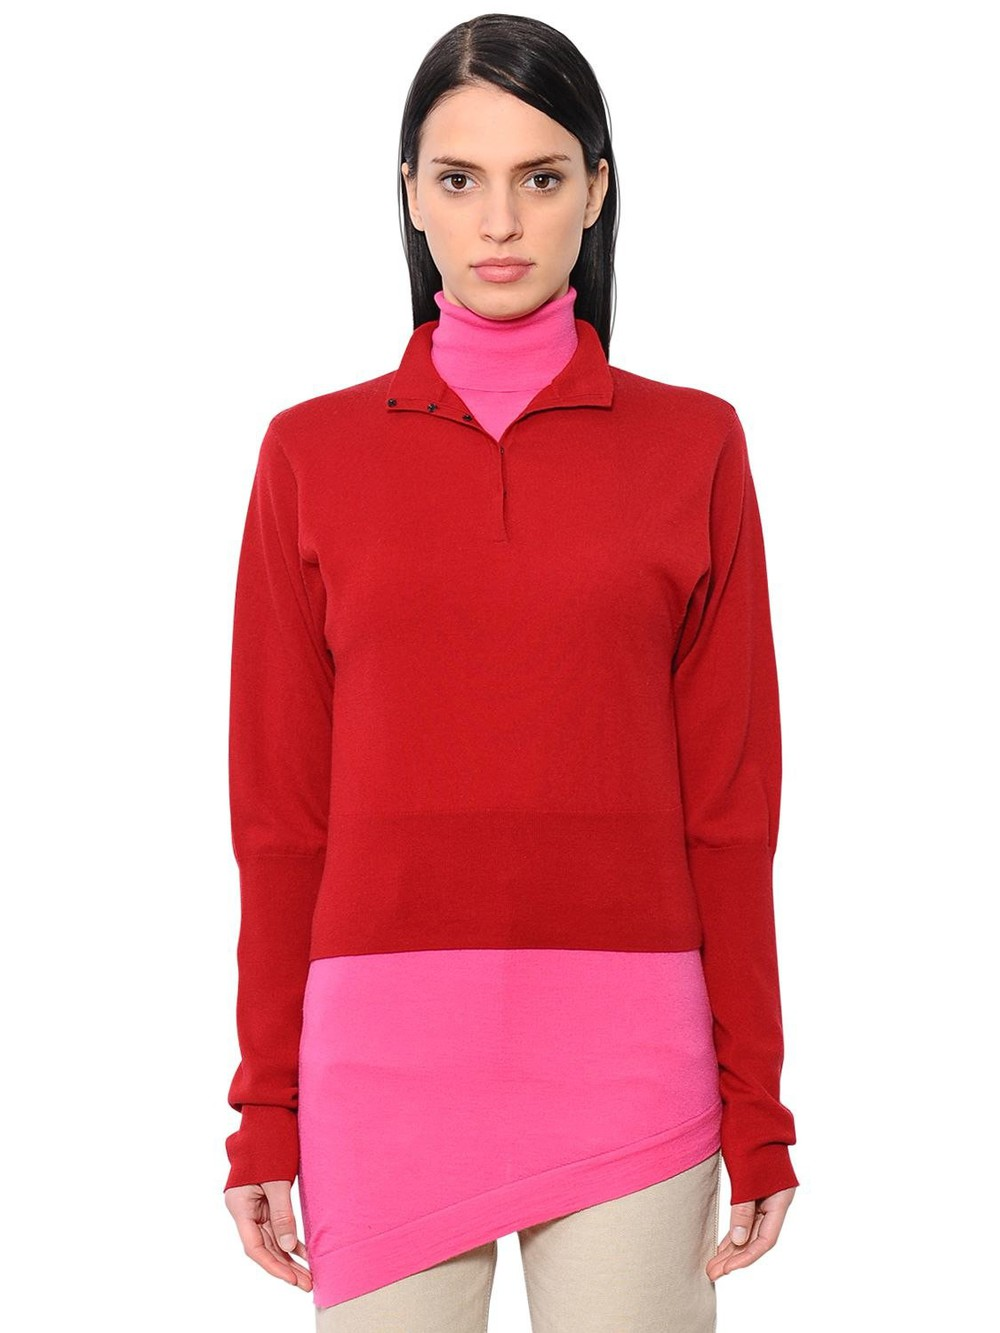 J.W.ANDERSON Double Layer Merino Wool Knit Shirt in pink / red